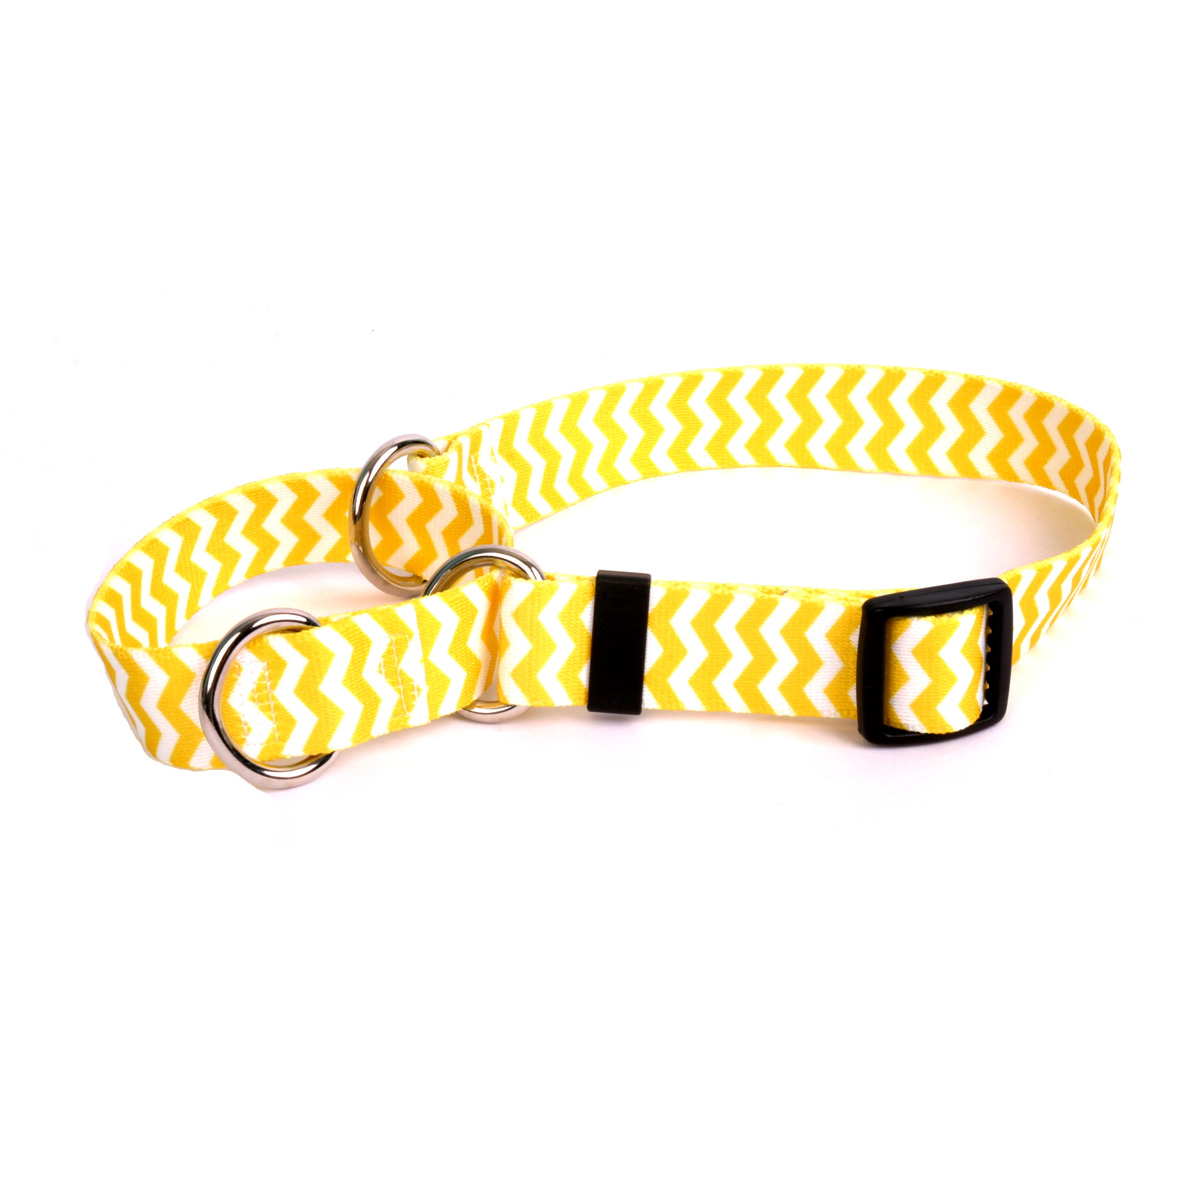 Chevron - Lemon Martingale Collar